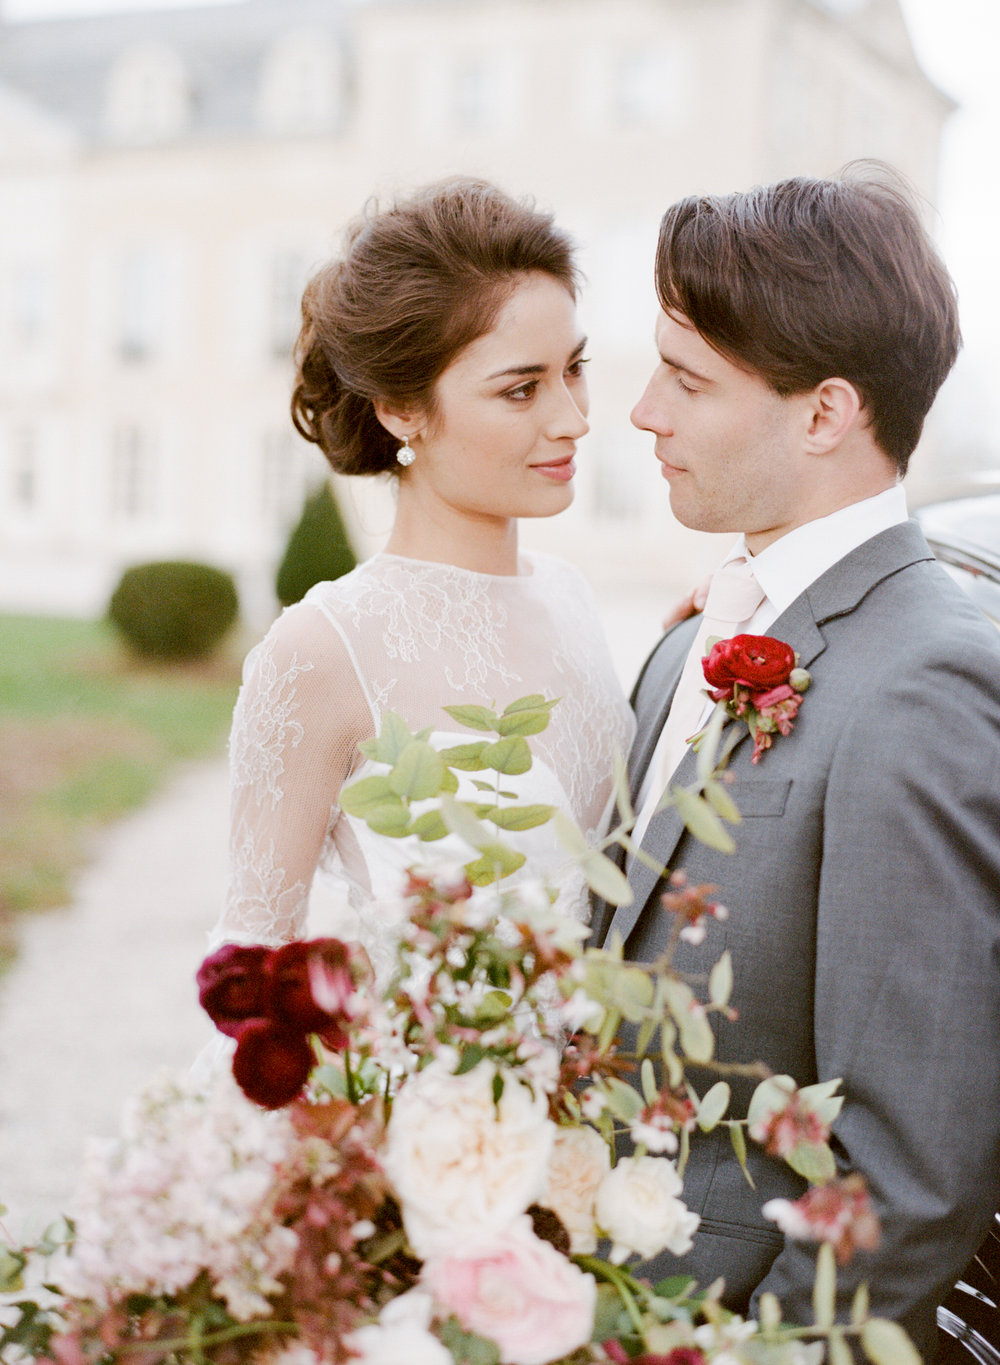 A bride and groom couple session after a wedding at Chateau de Varennes, in Burgundy, France; Sylvie Gil Photography